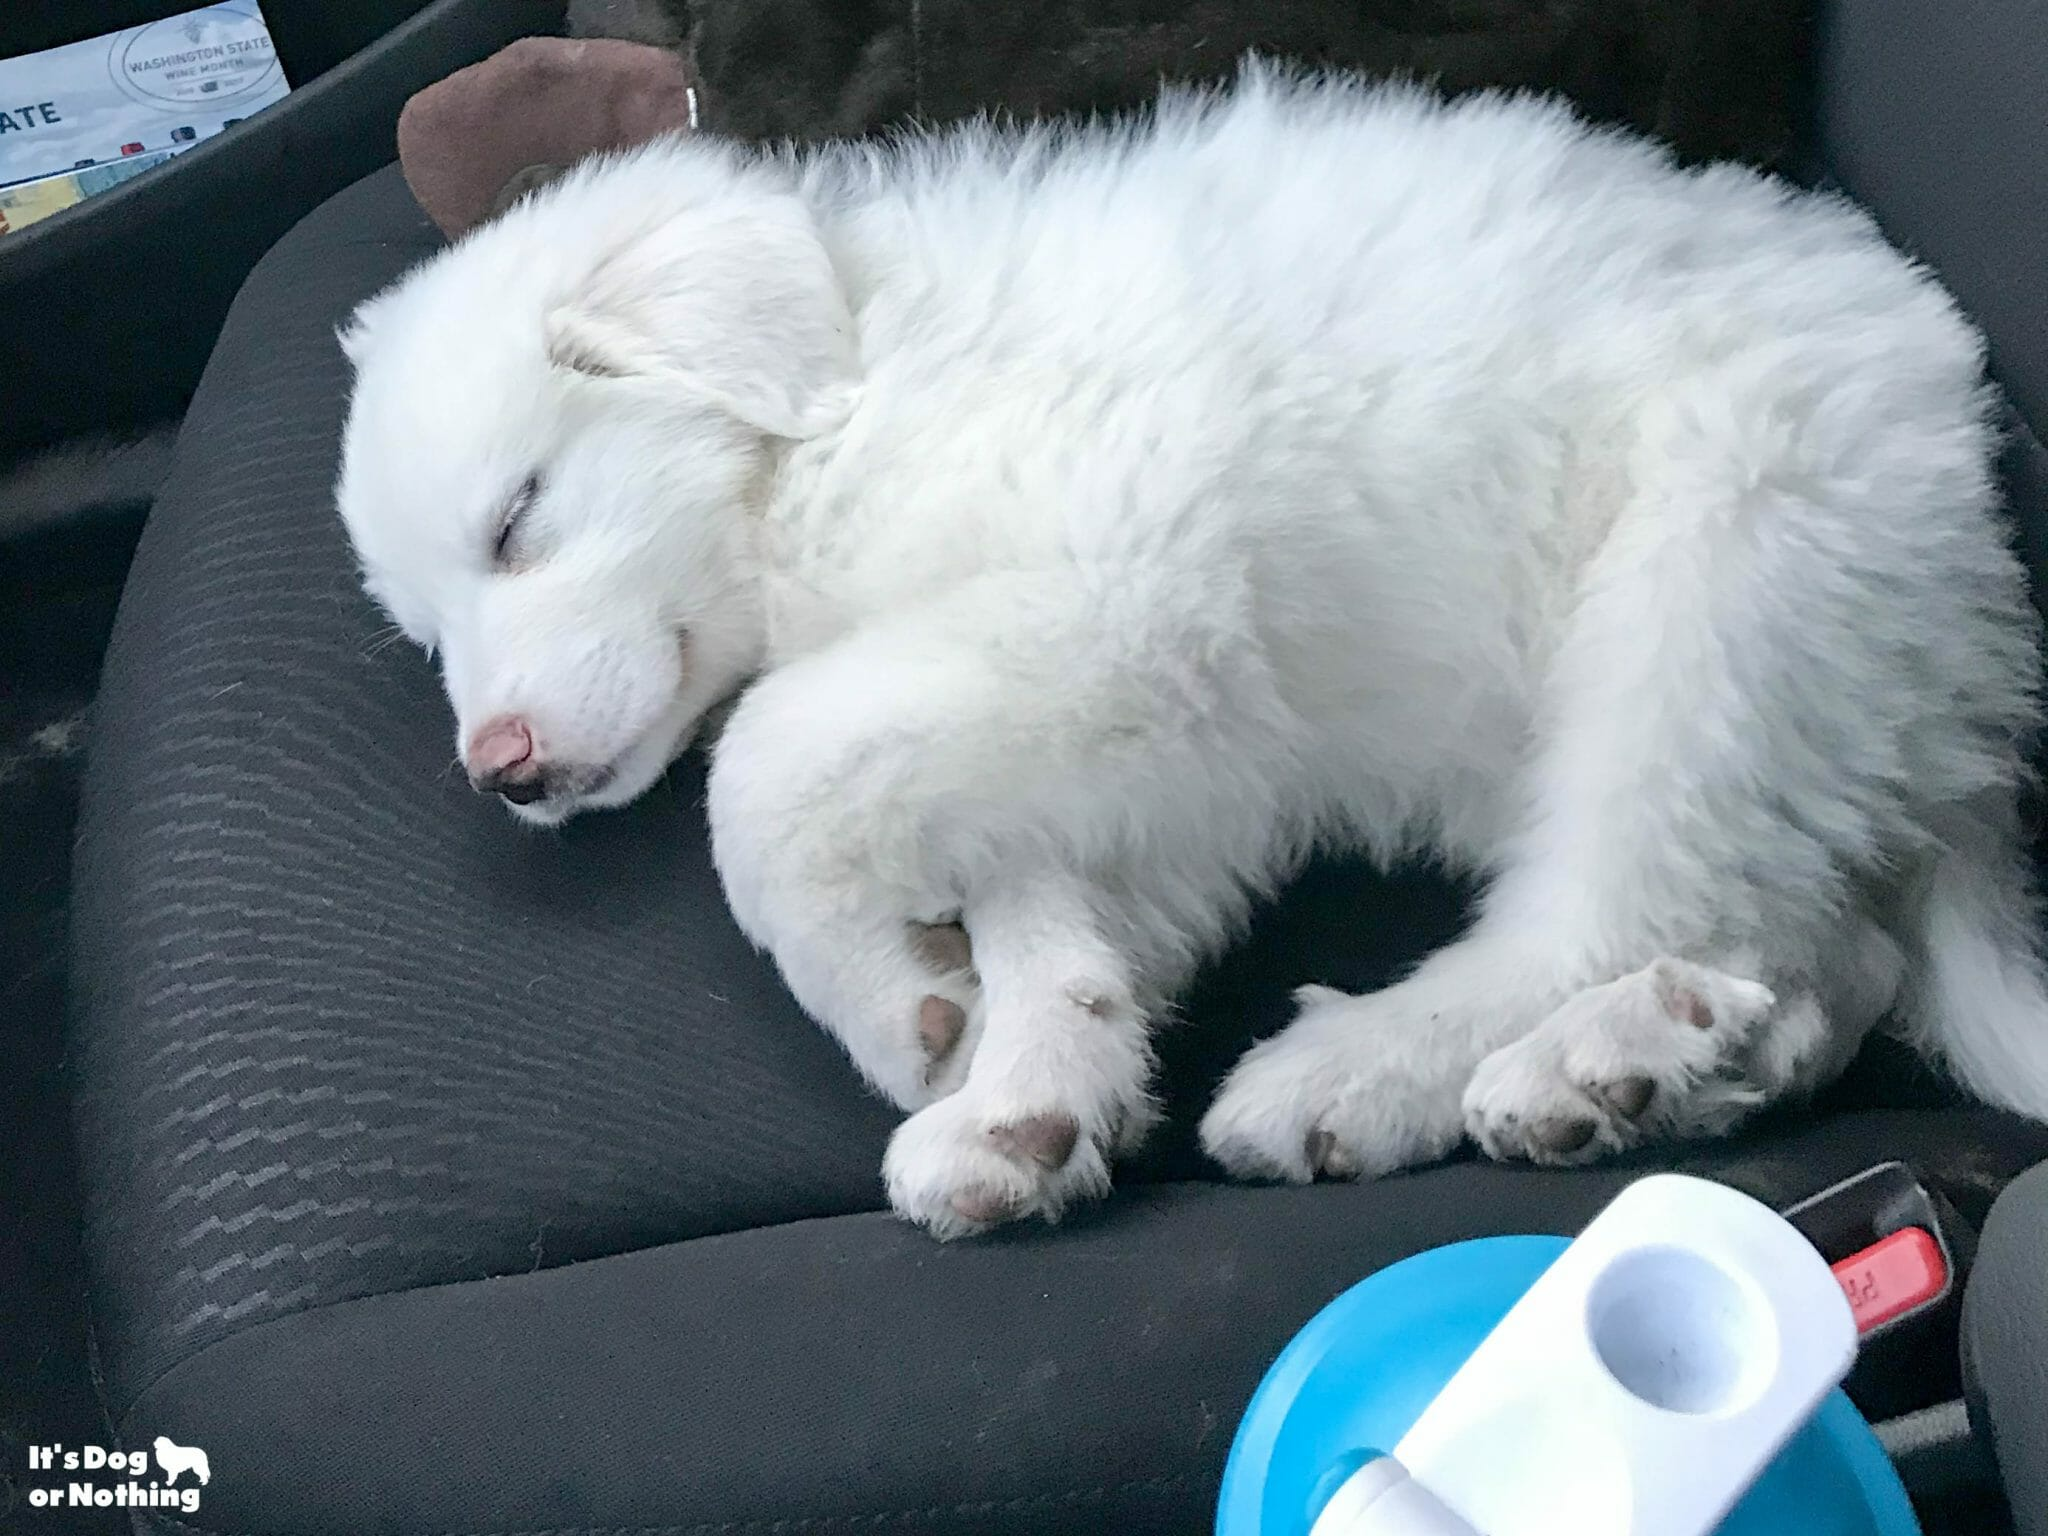 Kiska, our Great Pyrenees puppy, at 8 weeks.